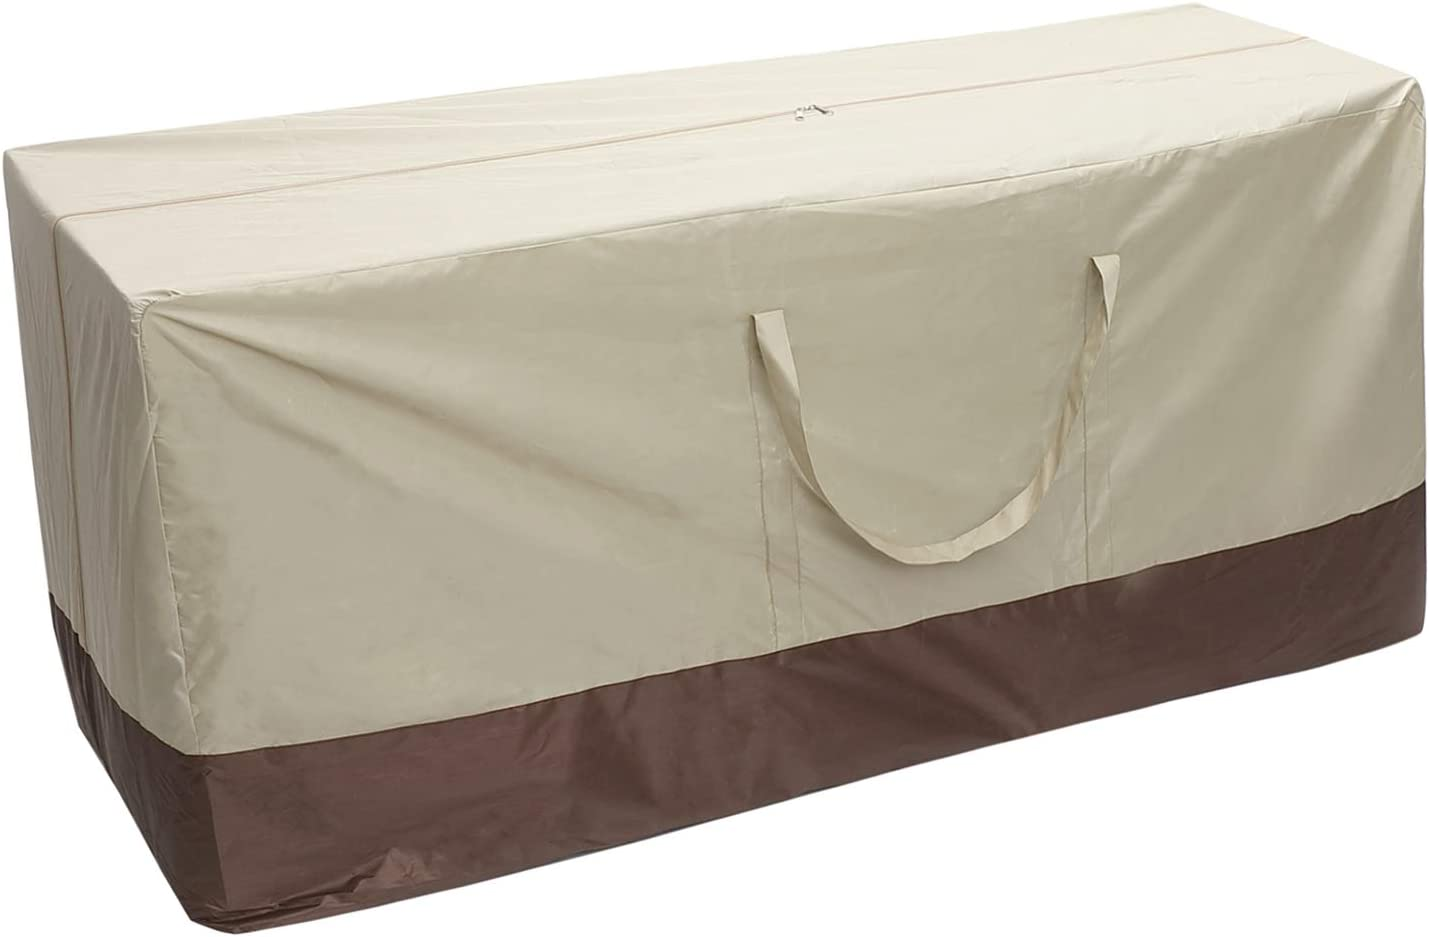 """Cushion Storage Bag Weather Resistant Outdoor Patio Furniture Cover with Handles Protective Zippered Xmas Tree Storage Bag (60"""" Lx28 Hx20 W, Beige)"""